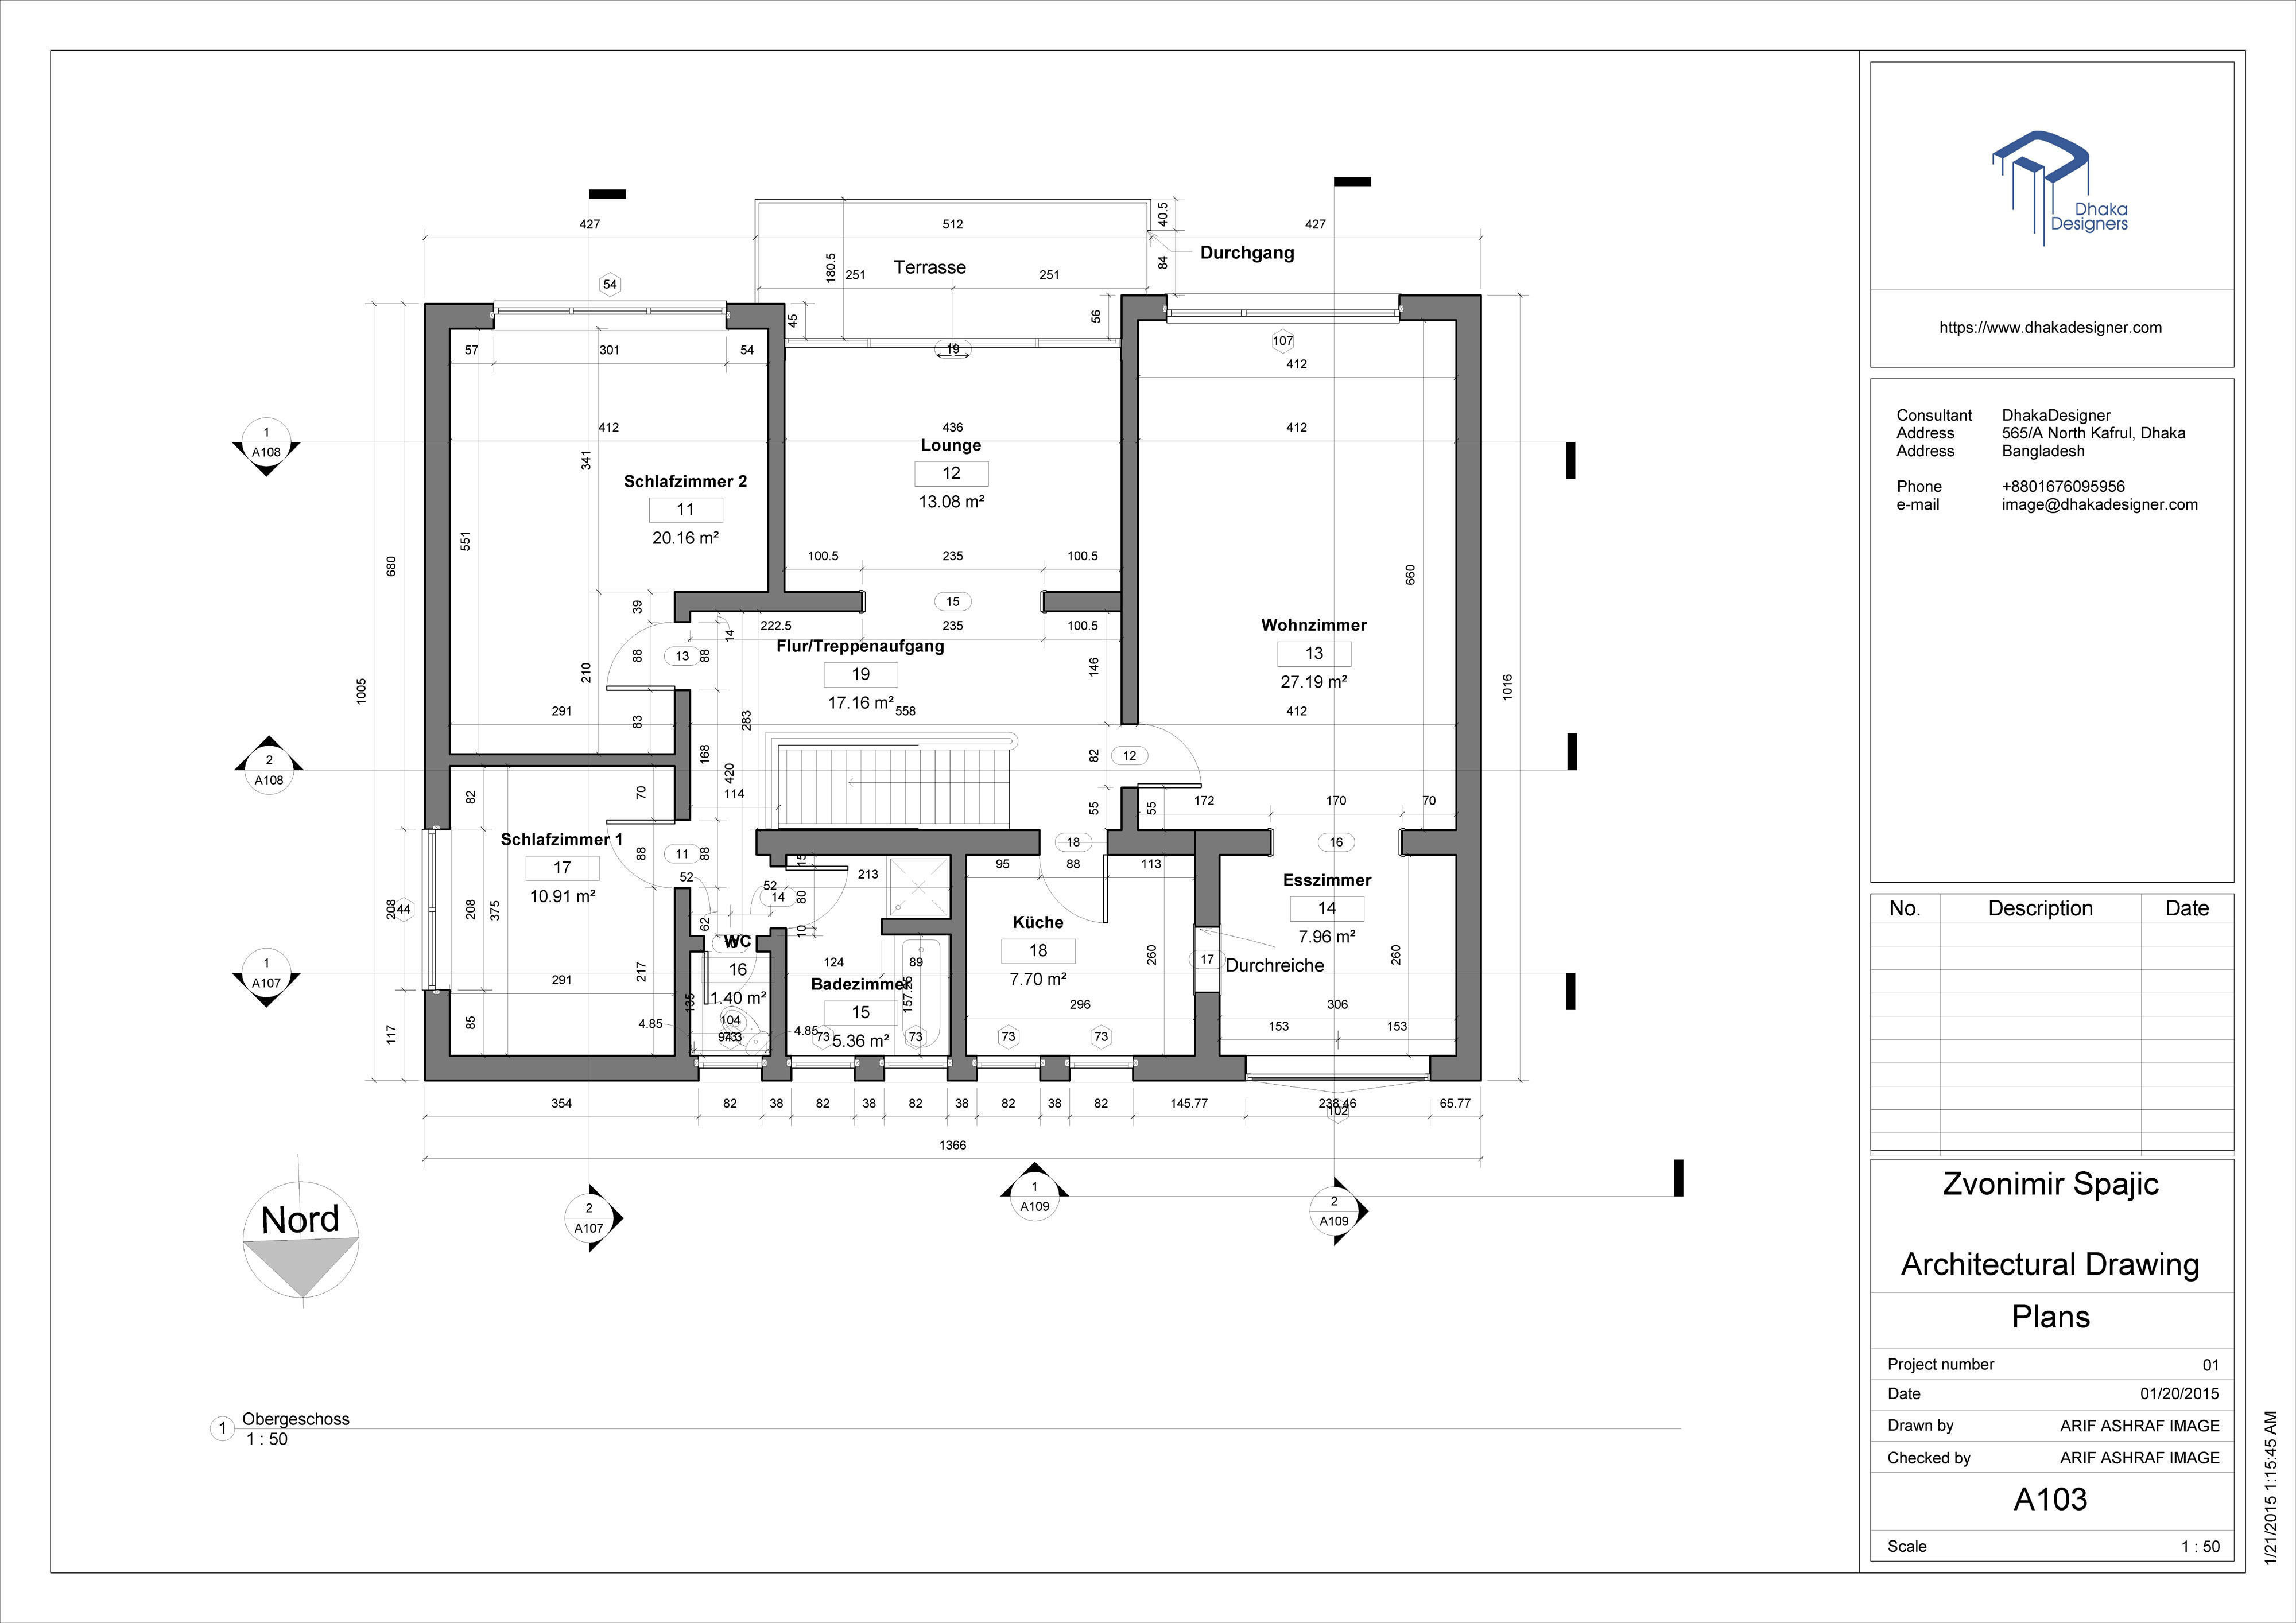 Architectural Drawing In Revit 3d Model Rvt 4